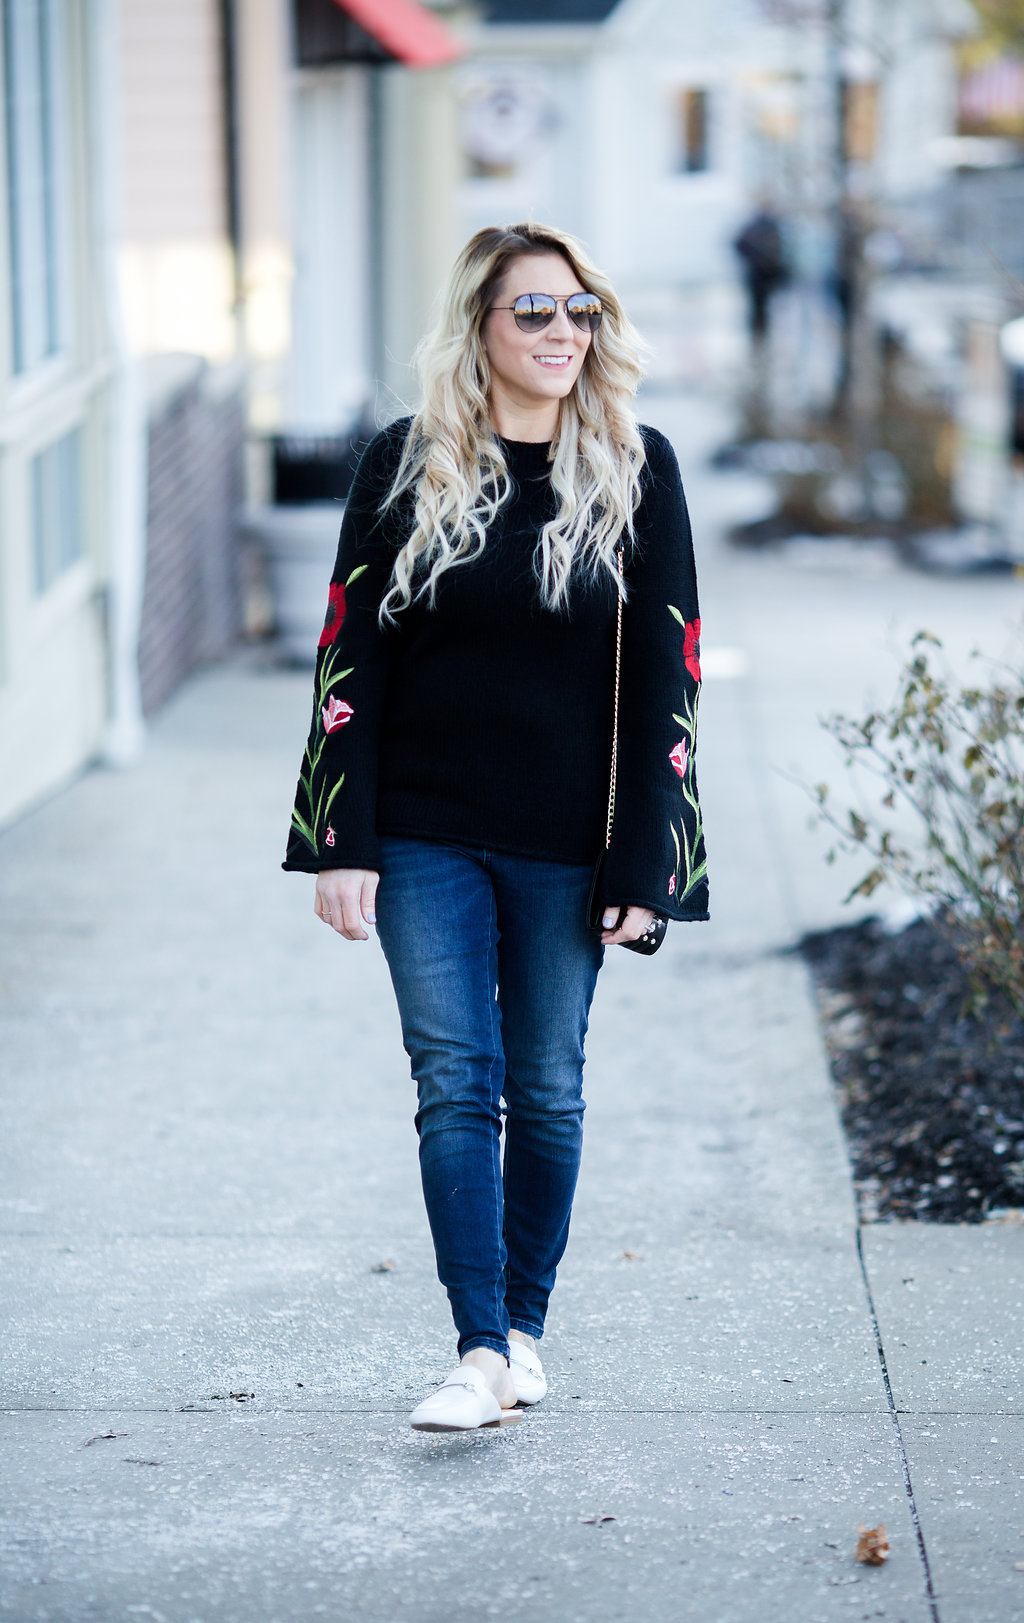 An embroidered floral sweater is the perfect way to transition your wardrobe from winter to fall!